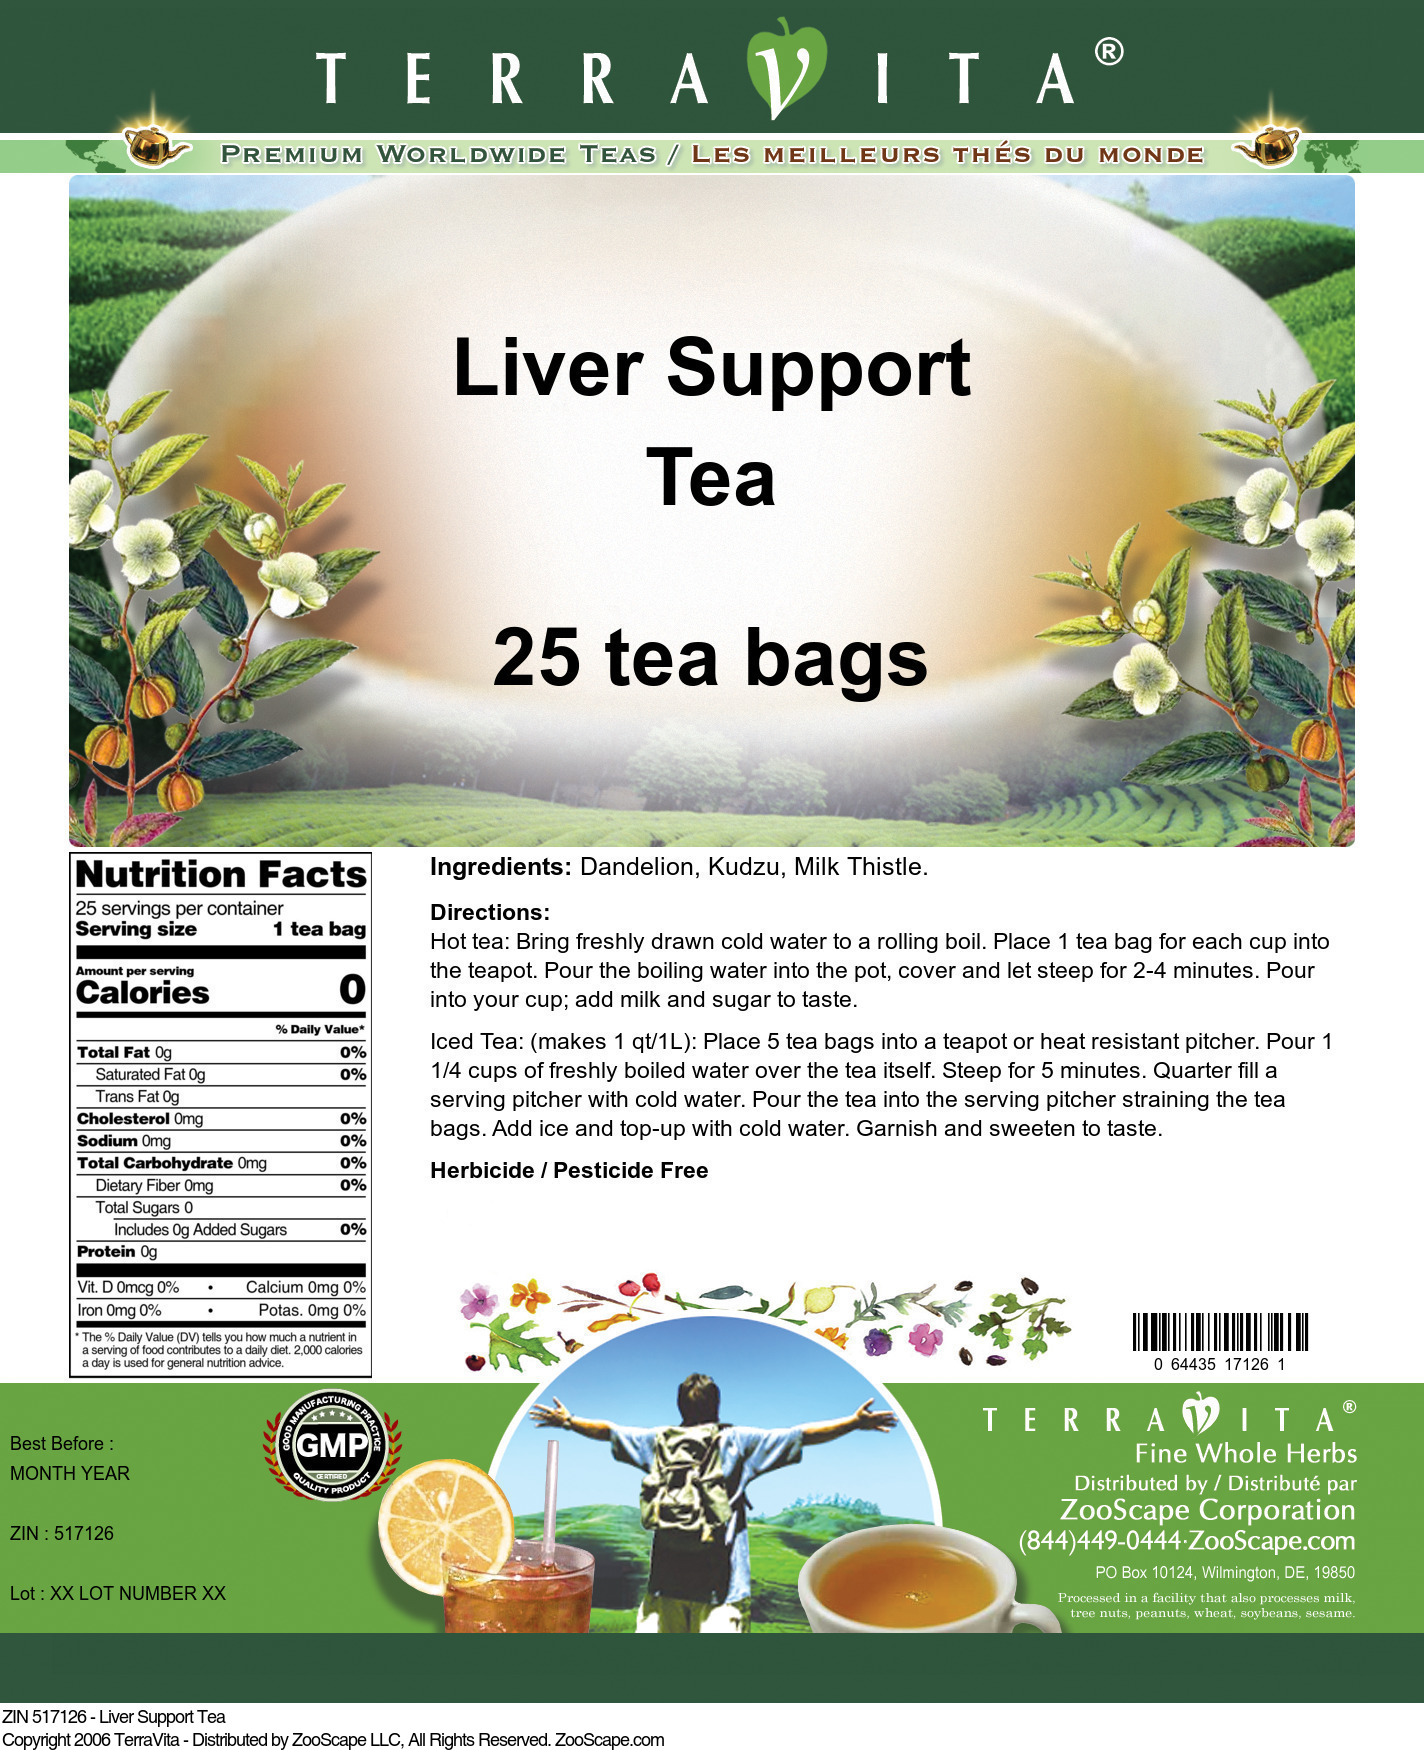 Liver Disease Support